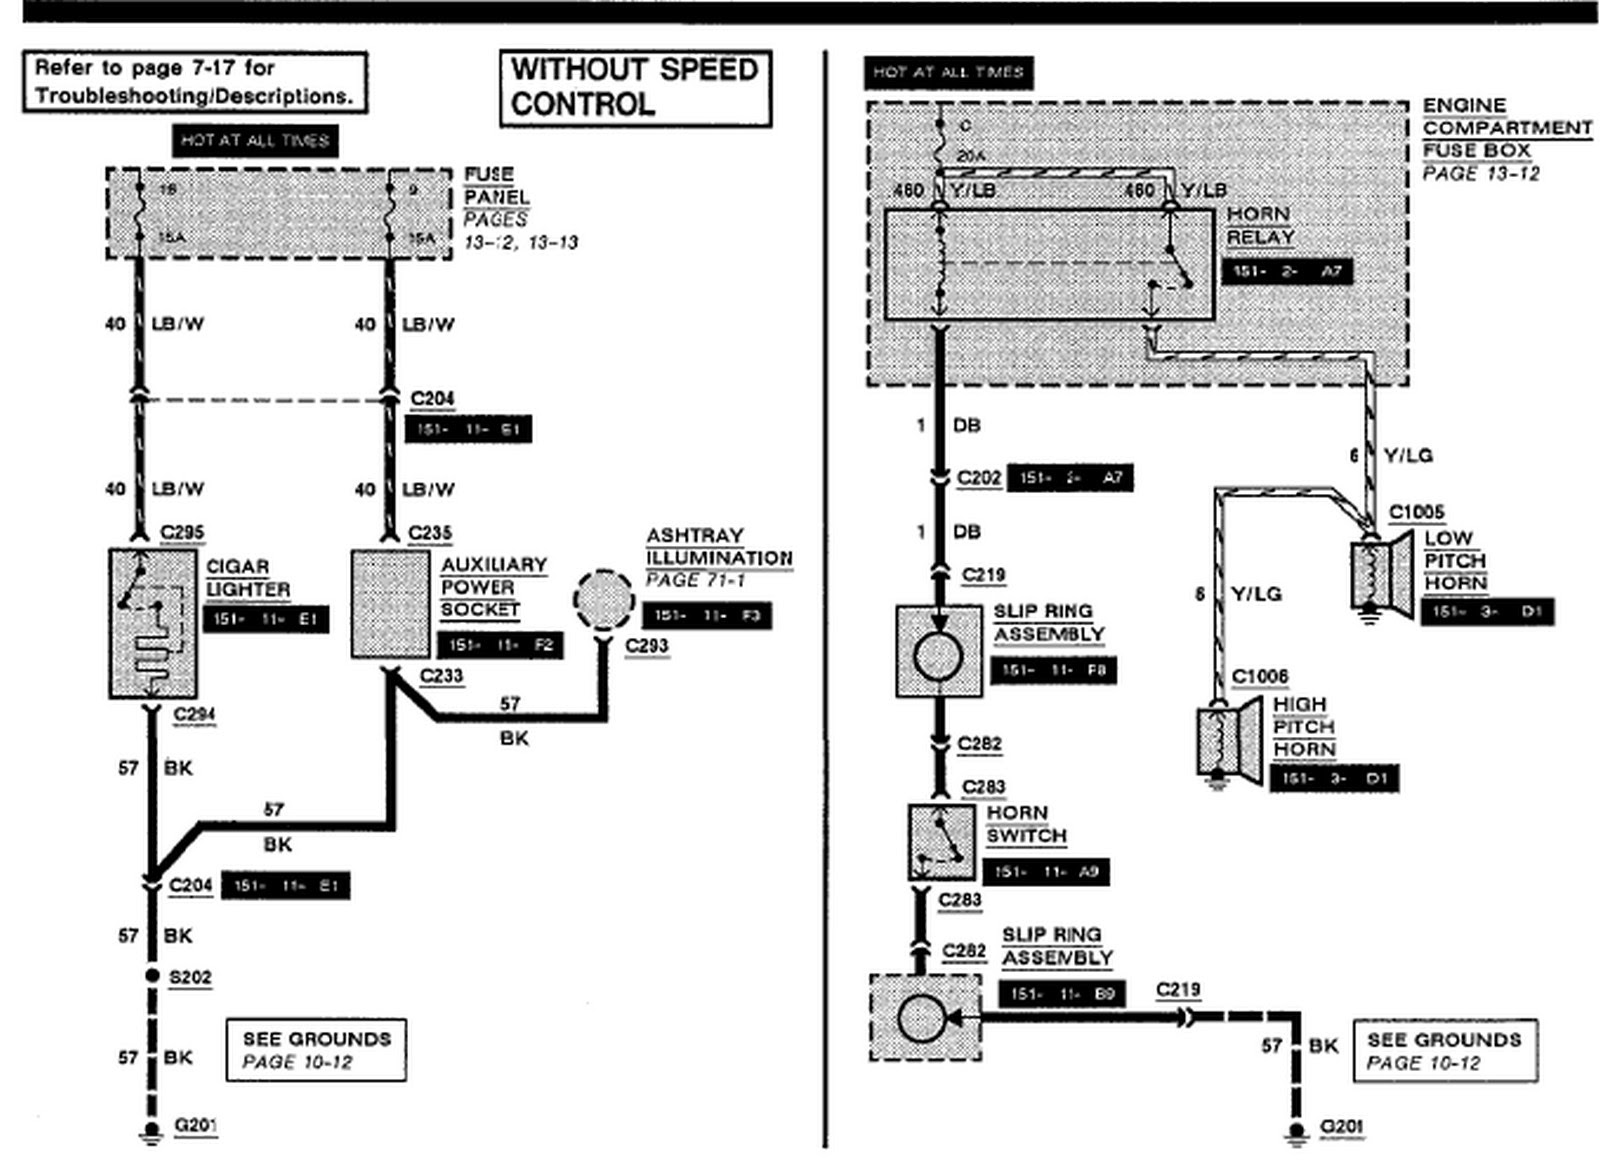 1999 Ford F 150 Trailer Wiring Diagram Wiring Diagrams Name Name Miglioribanche It